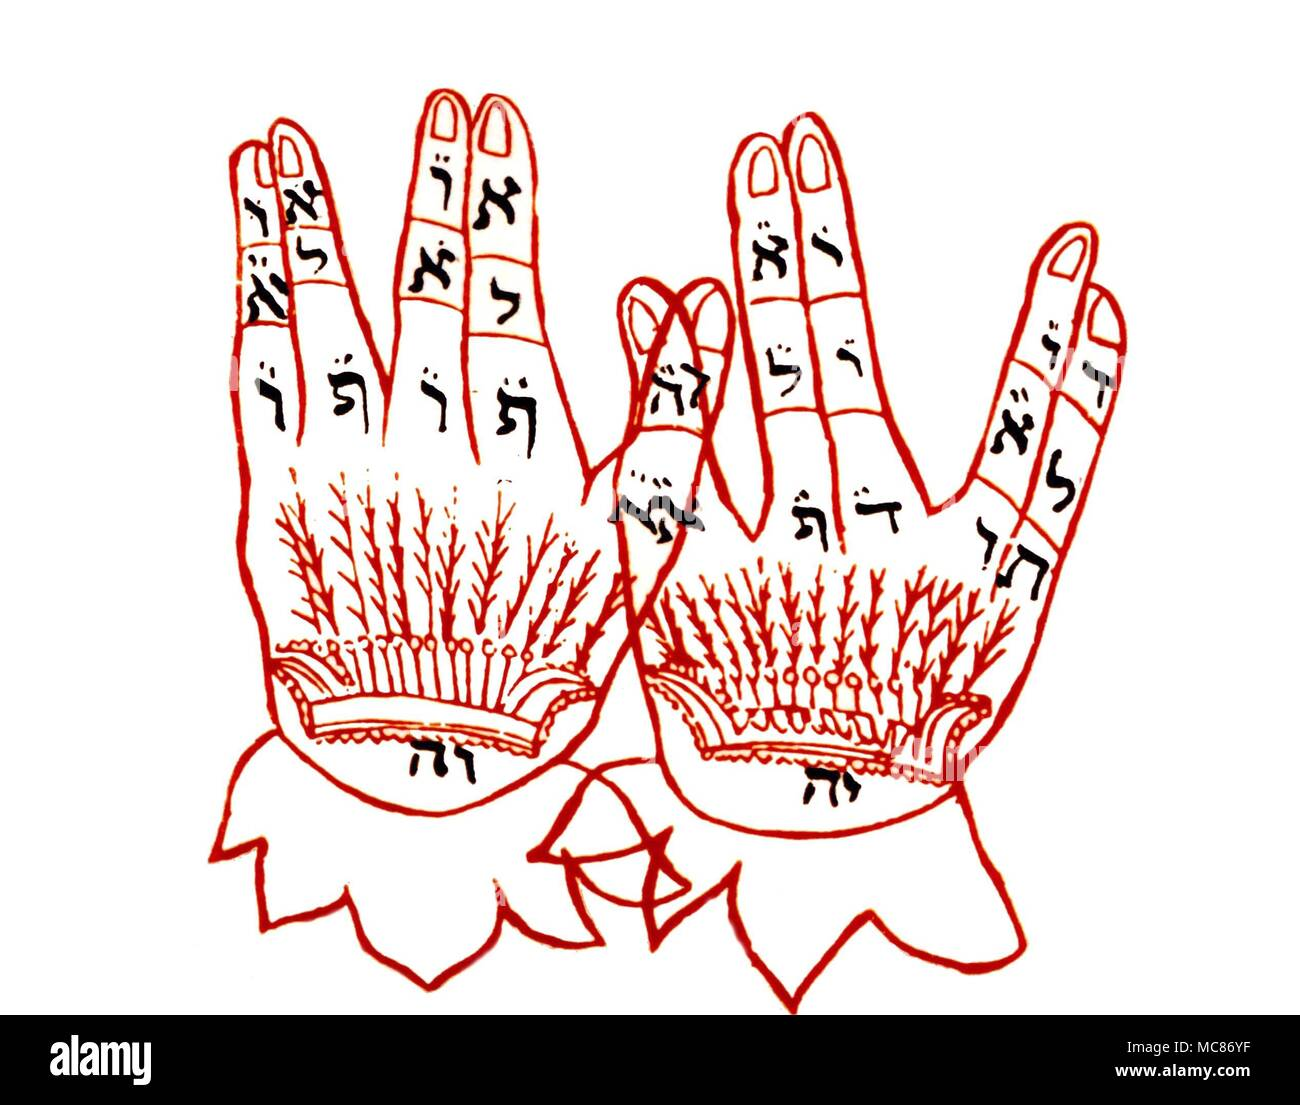 CABBALA The Cabbalistic system has eestablished a relationship between the letters and numbers and the human body including the hand.  In this example, the association is with the 32 ways of the Sephirothic wisdom - Stock Image